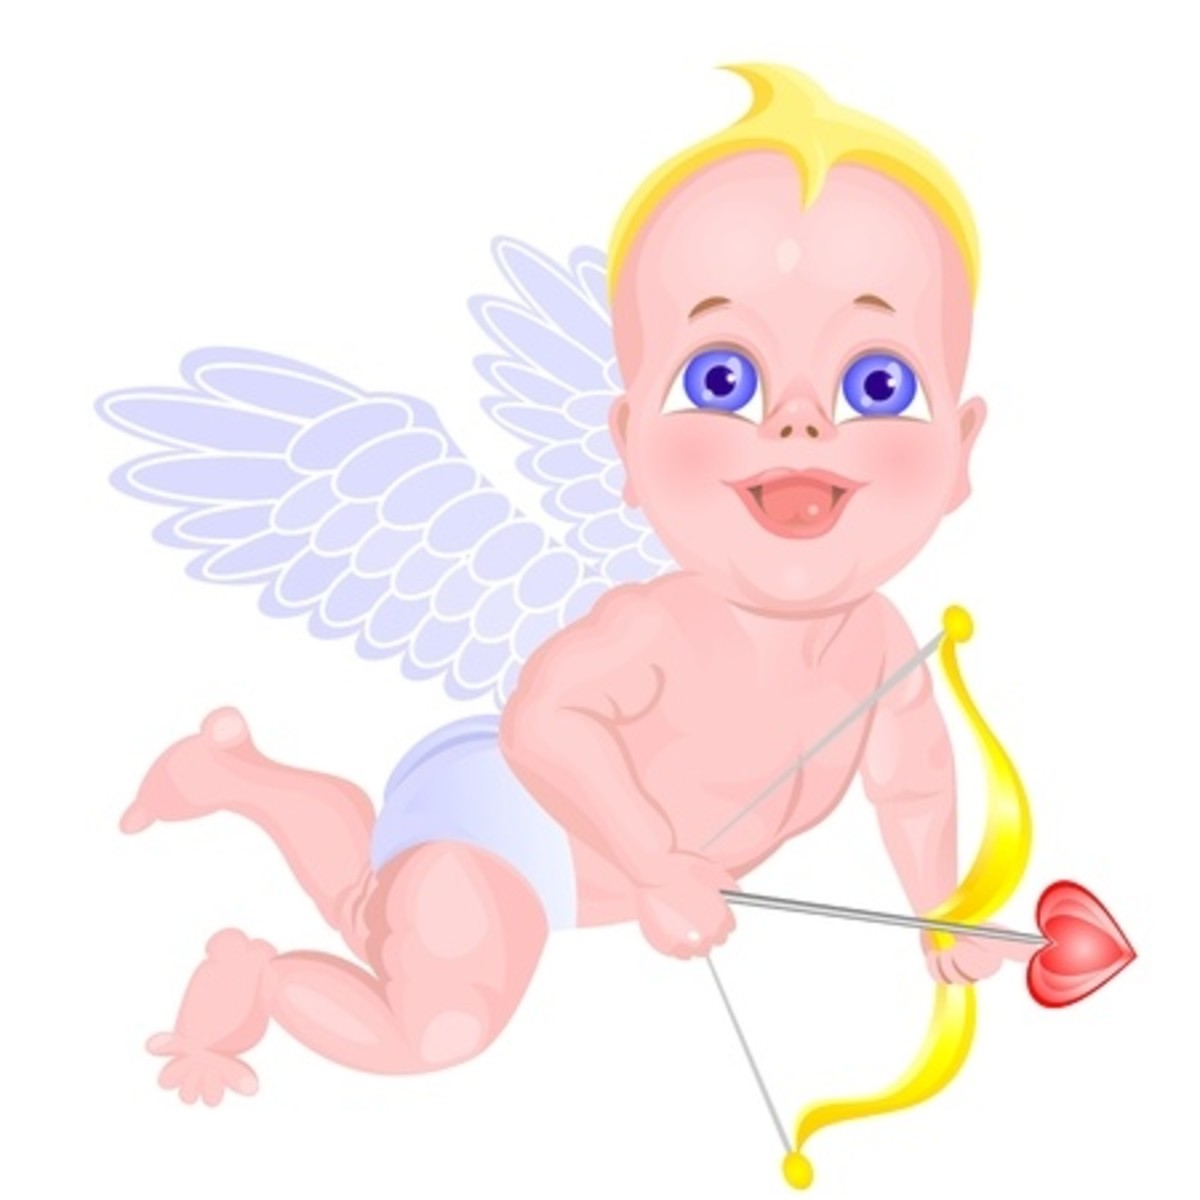 A cute version of Cupid